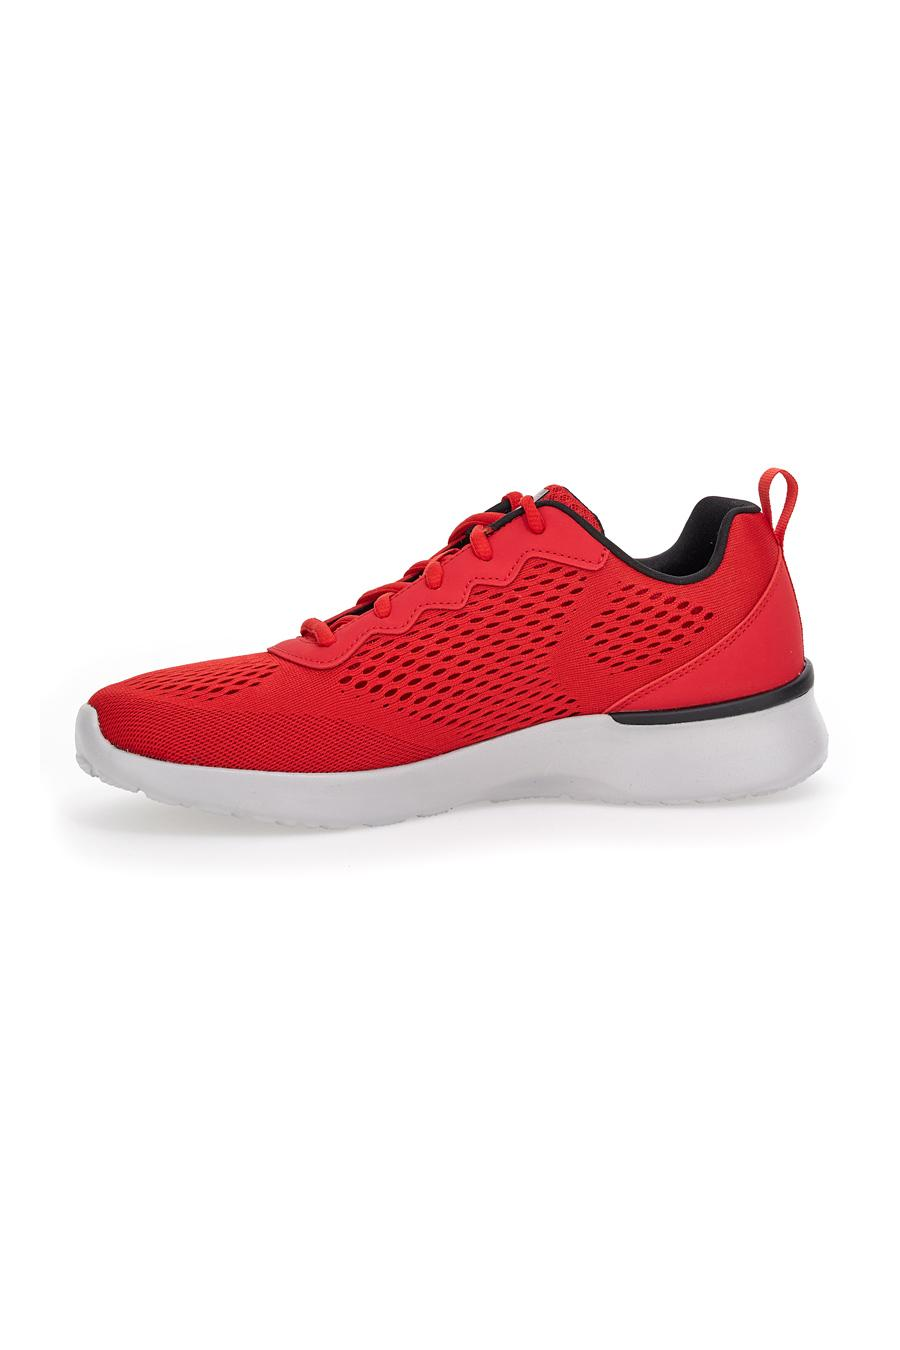 FITNESS uomo rosso SKECHERS SKECH AIR DYNAMIGHT TUNED UP | Pittarello